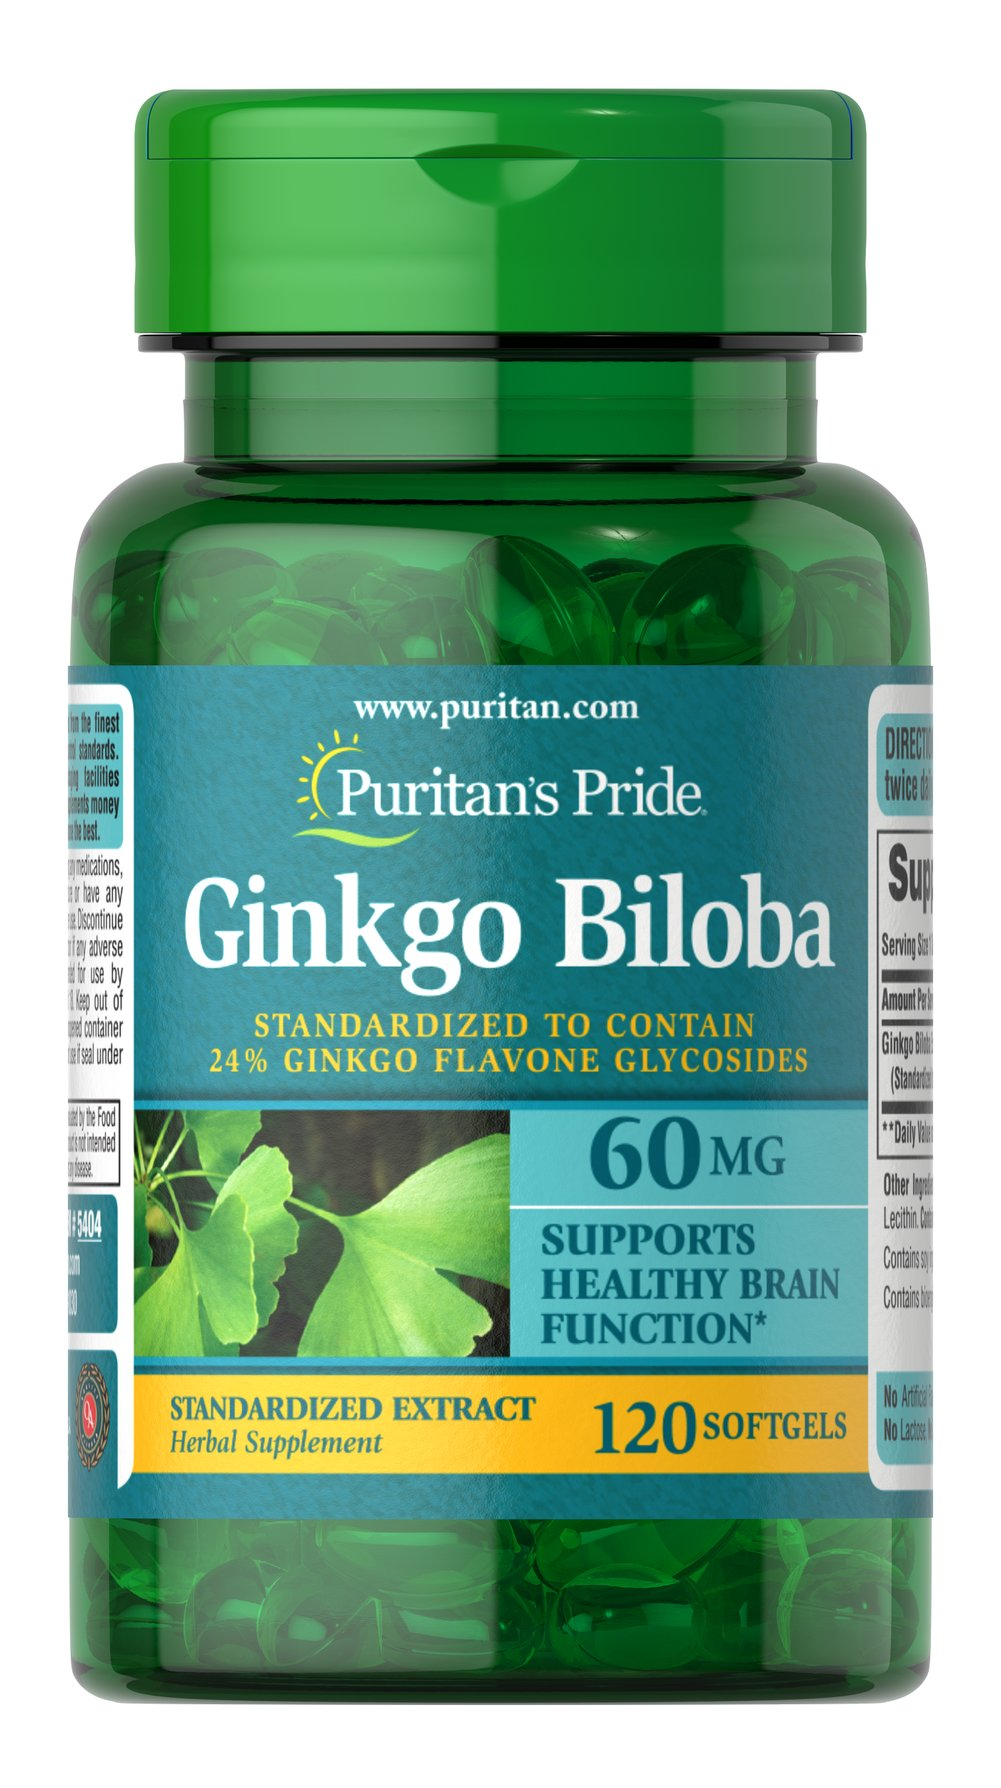 Ginkgo Biloba 60 mg <p>Scientific research documents the ability of Ginkgo to maintain peripheral circulation to the arms, legs and brain.** In addition, Ginkgo helps improve memory, especially occasional mild memory problems associated with aging.** Our Ginkgo Biloba consists of high-quality herbs standardized to contain 24% Ginkgo Flavone Glycosides</p> 120 Softgels 60 mg $10.99